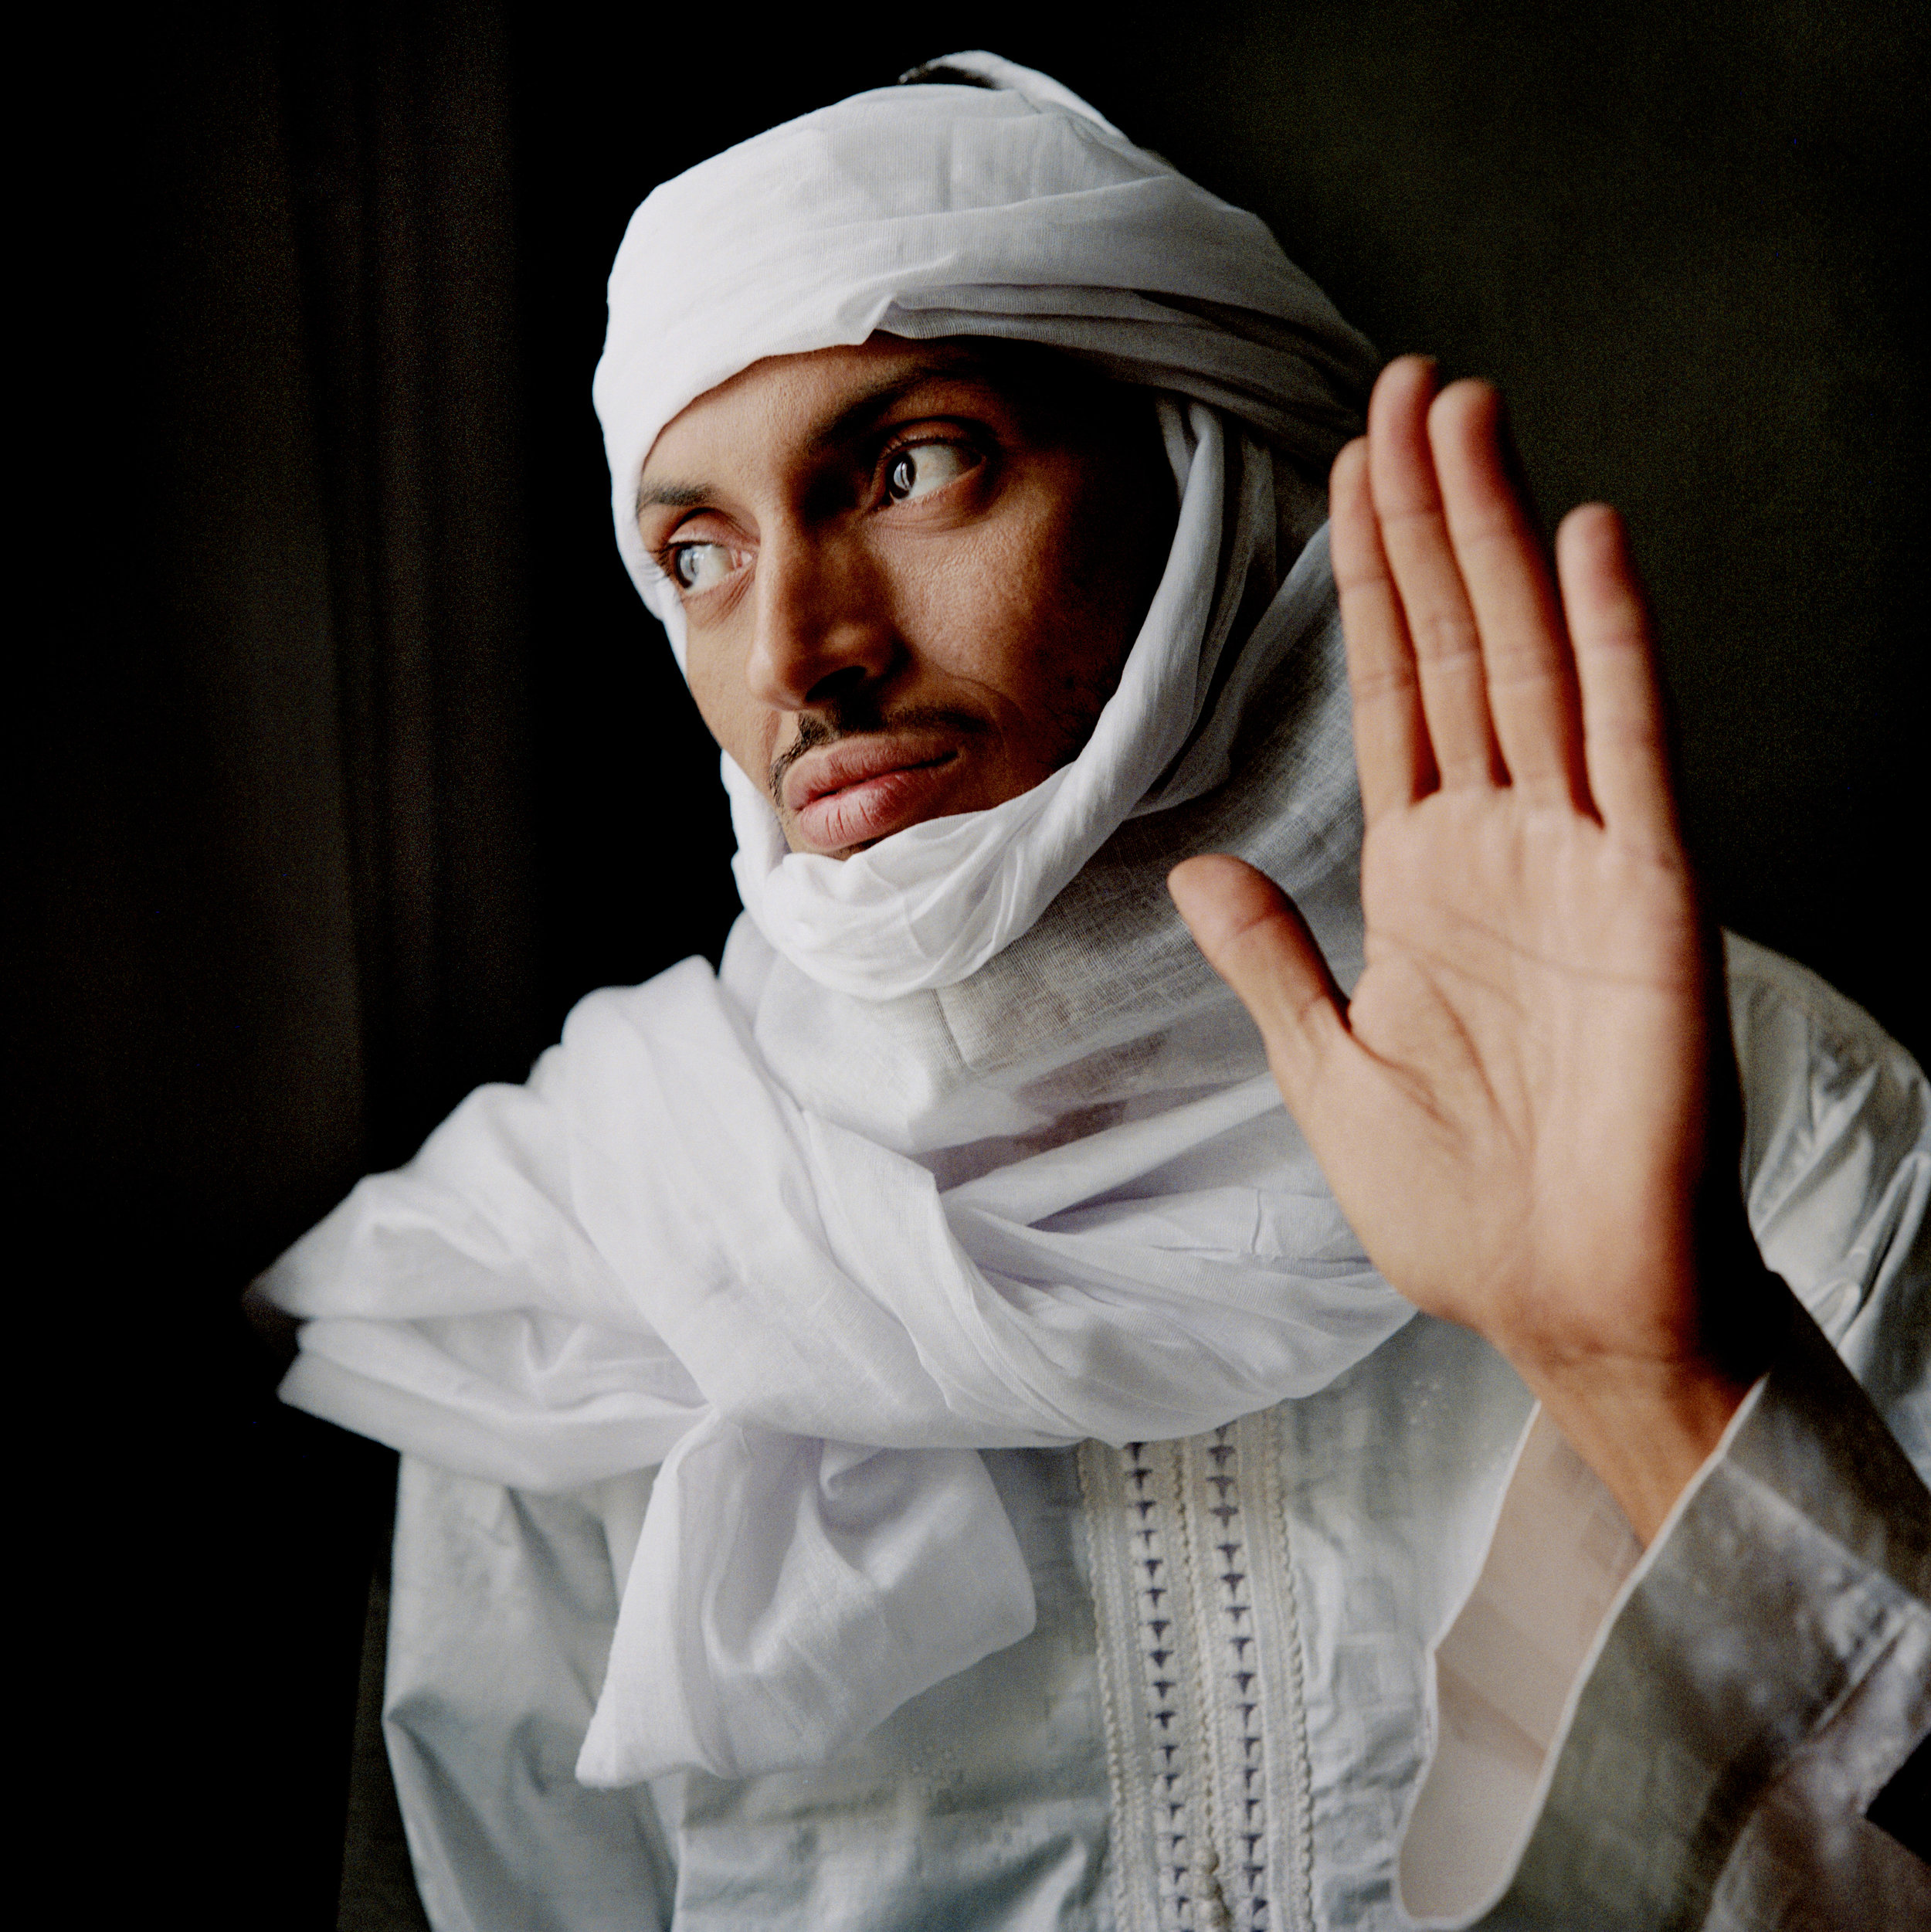 BOMBINO BRINGS AWARENESS TO HIS 'ENDANGERED' CULTURE THROUGH MUSIC